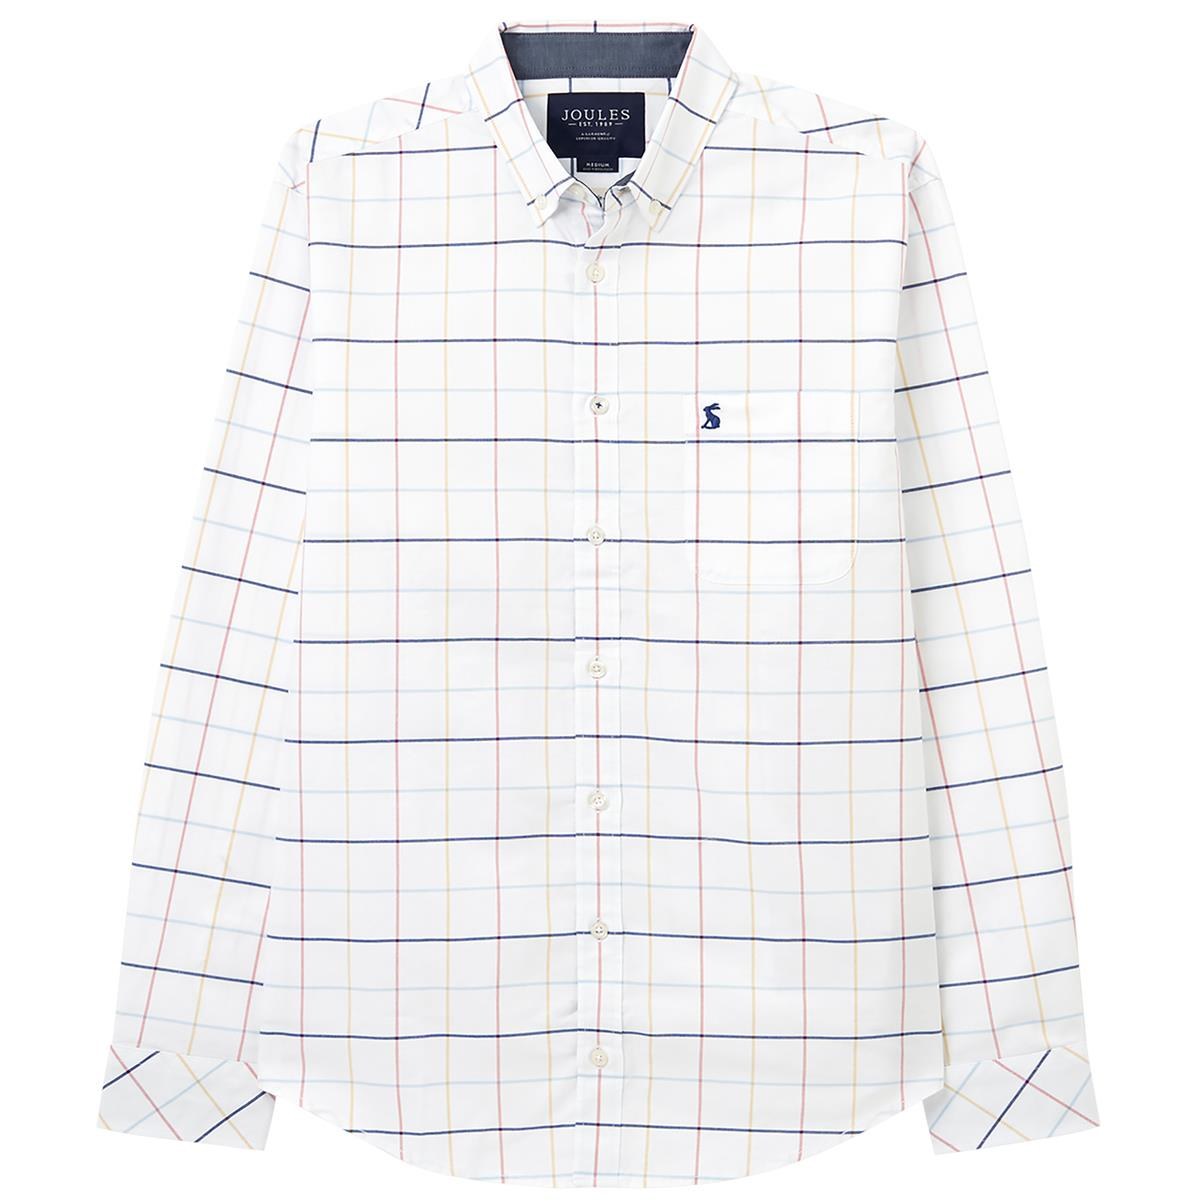 joules mens welford long sleeve classic fit check shirt multi blue check large